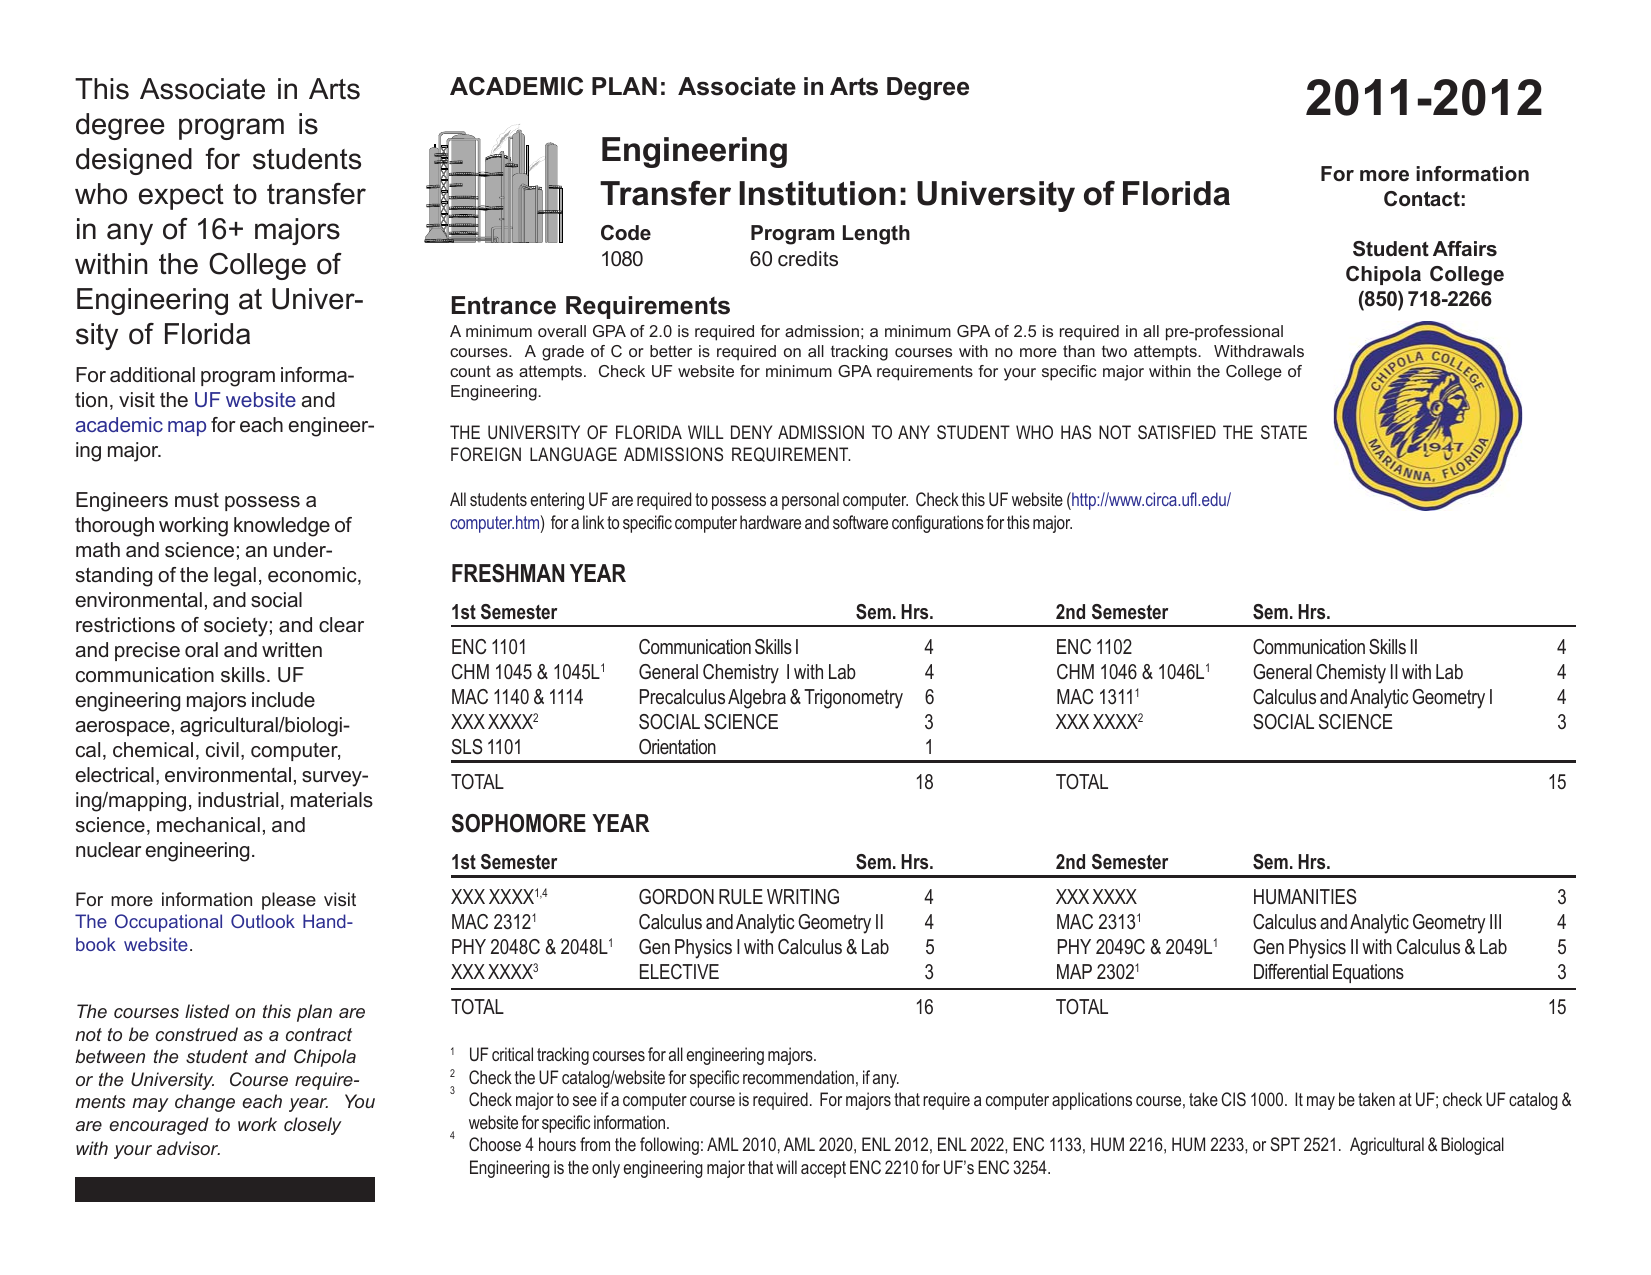 Engineering Transfer Institution: University of Florida